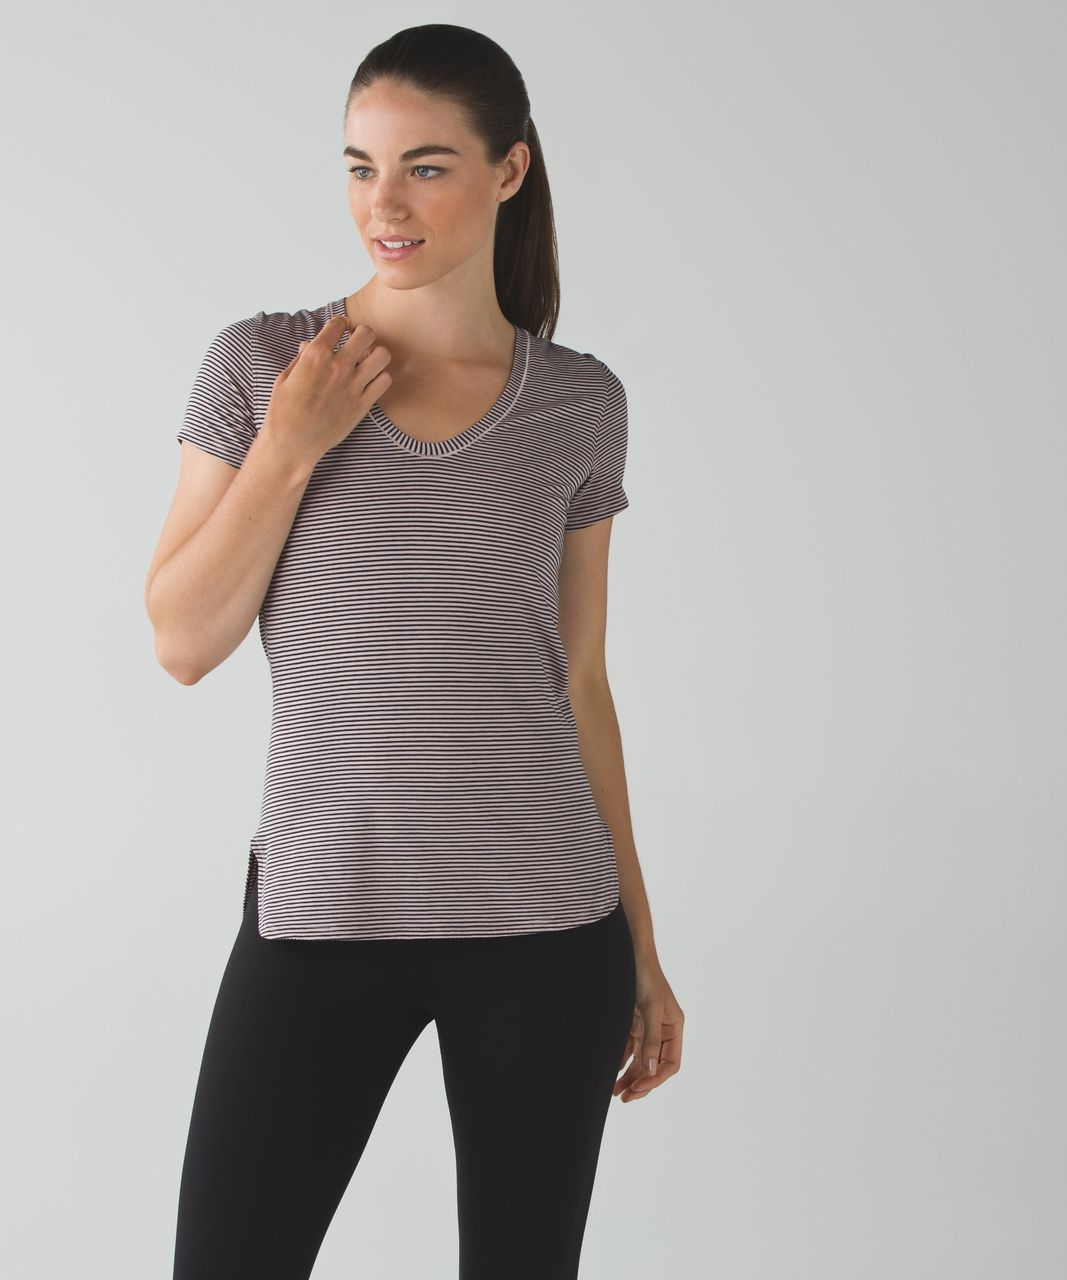 Lululemon Circadian Short Sleeve Tee - Mini Pop Stripe Mink Berry Black